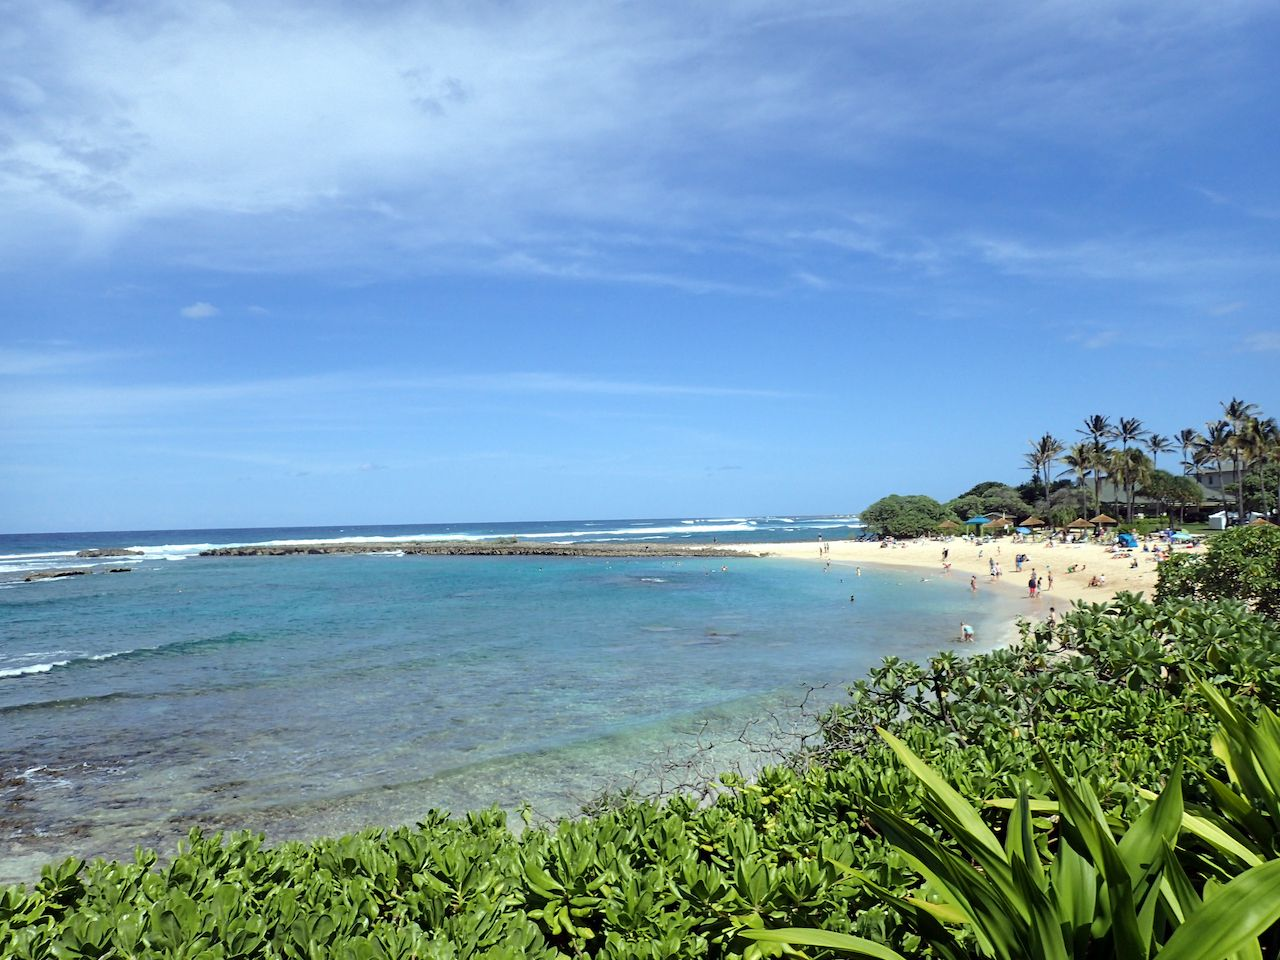 People play at Kuilima Cove Beach at Turtle Bay, Oahu Island North Shore, Hawaii, Oahu beaches for families